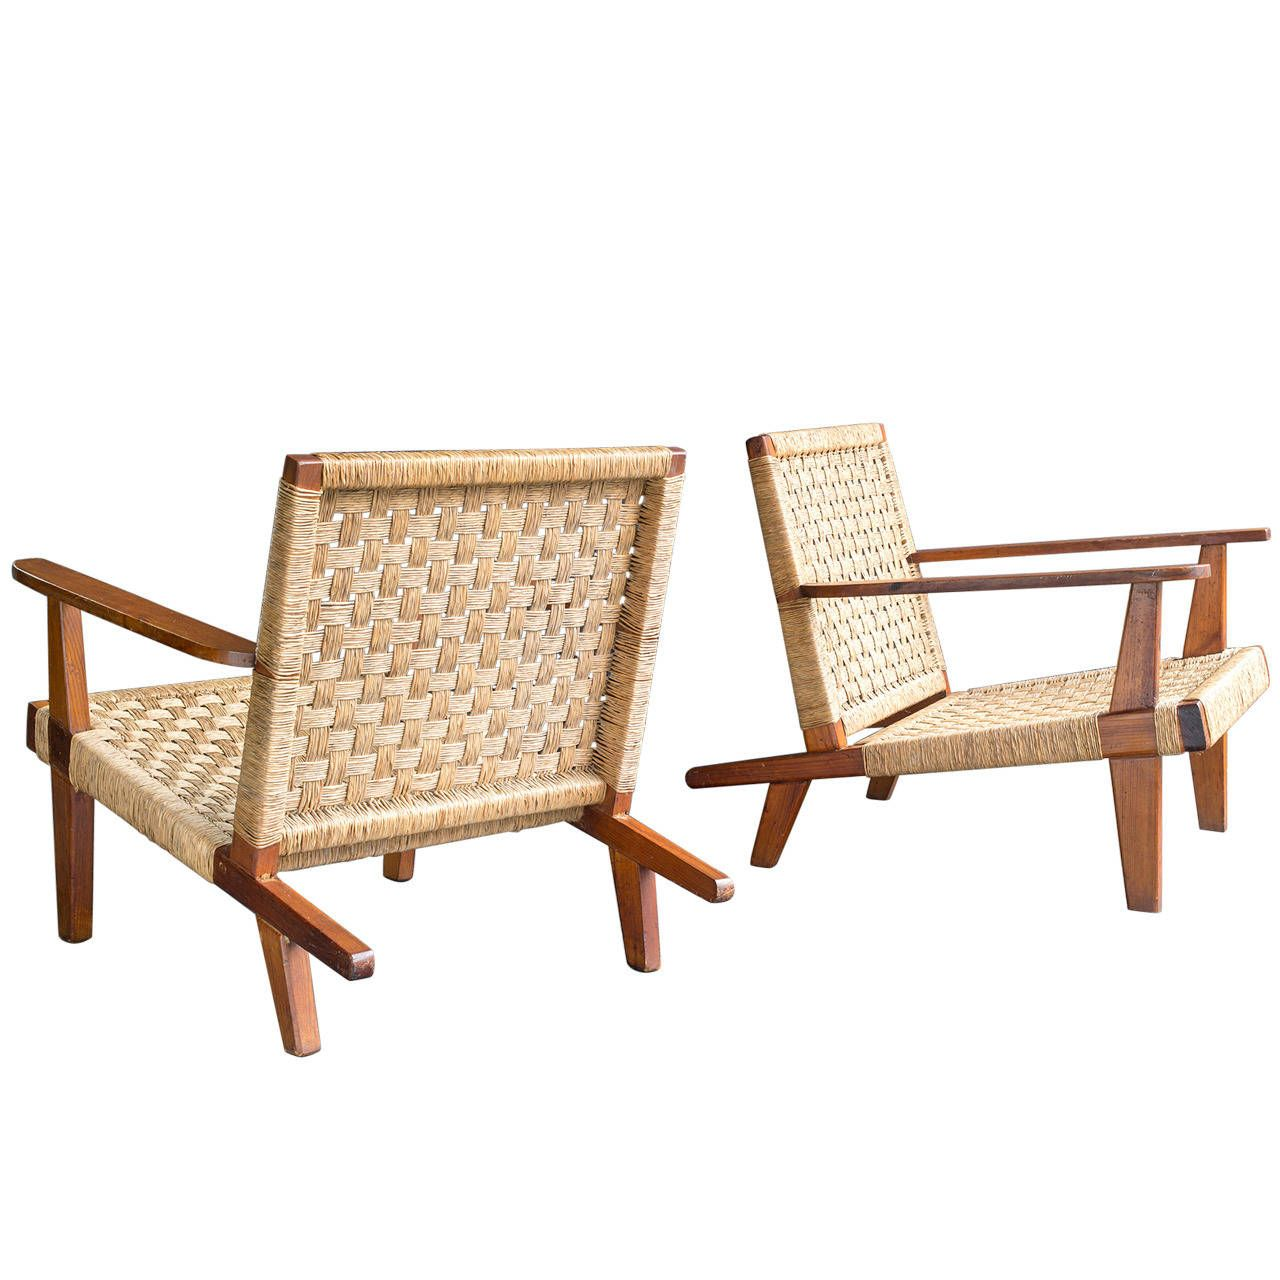 Antique lounge chairs - Clara Porset Lounge Chairs